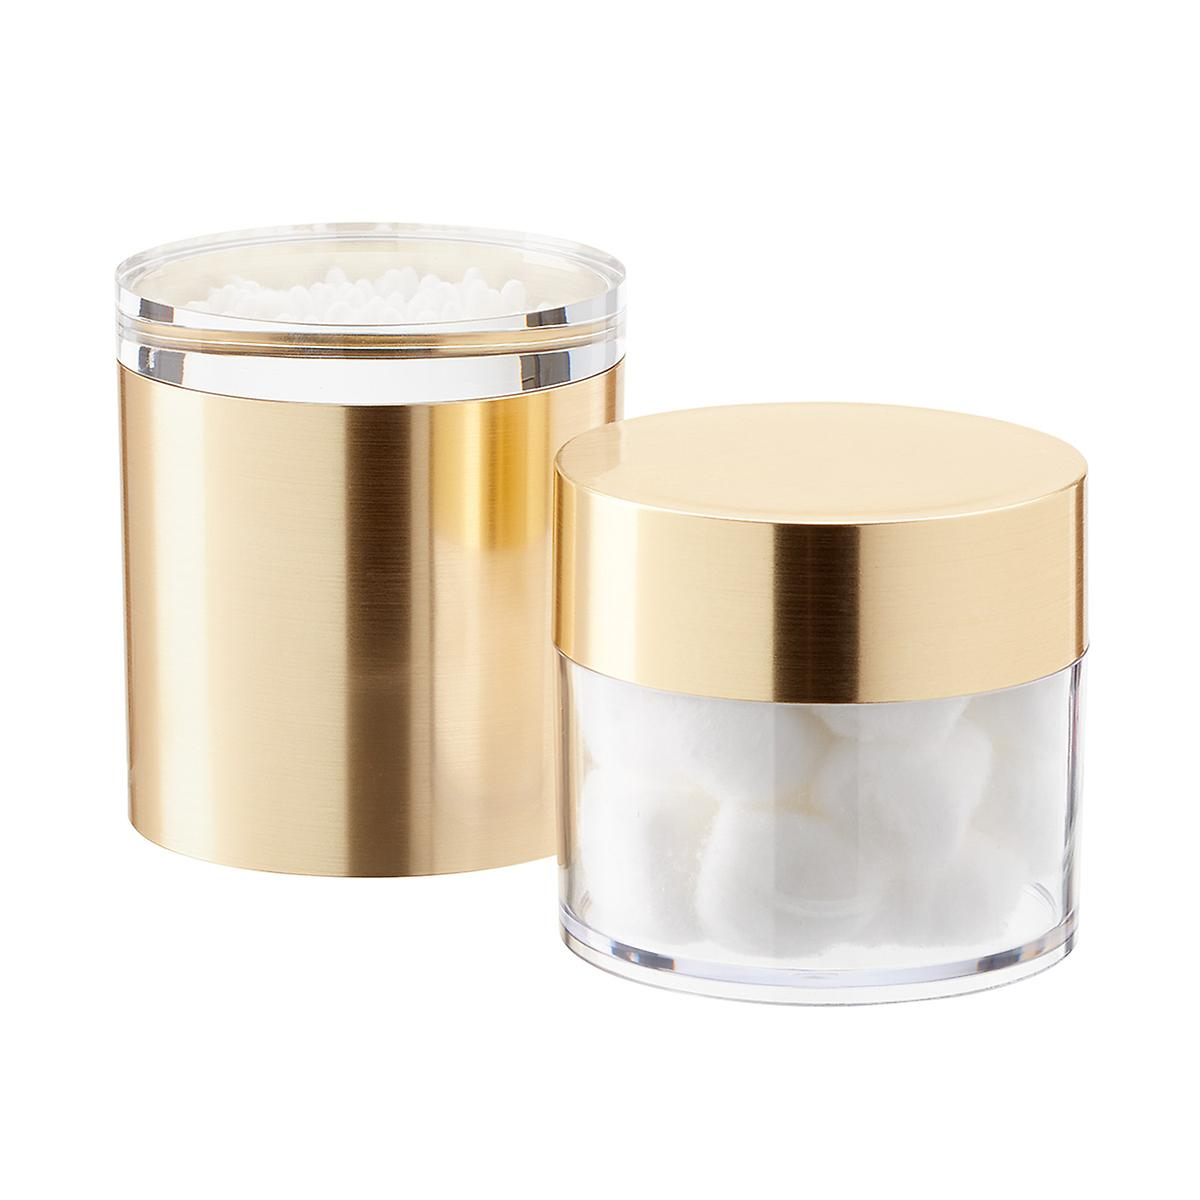 Brushed Gold Metallic Canisters with Lids